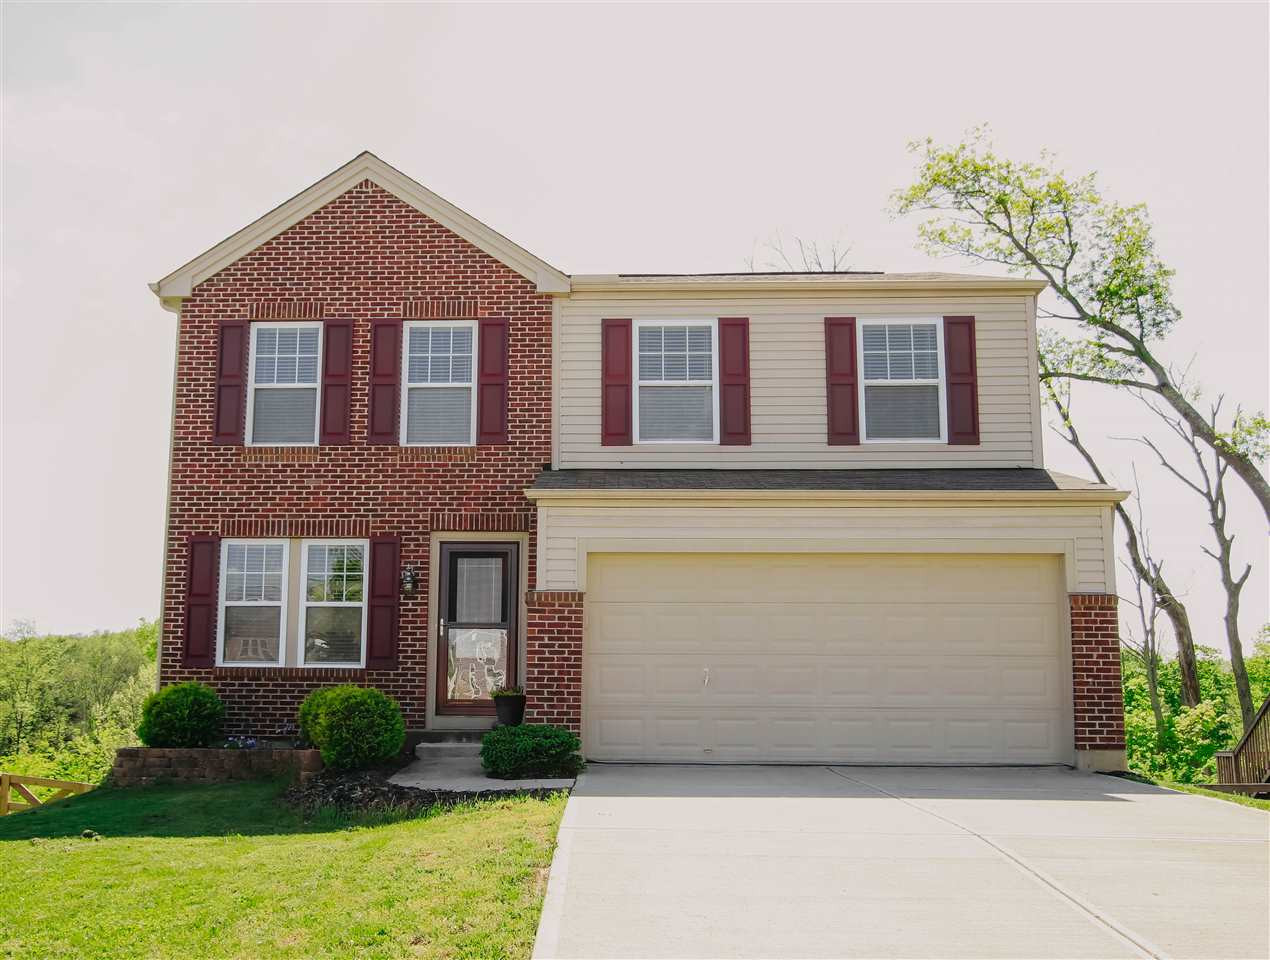 Photo 1 for 10133 Meadow Glen Dr Independence, KY 41051